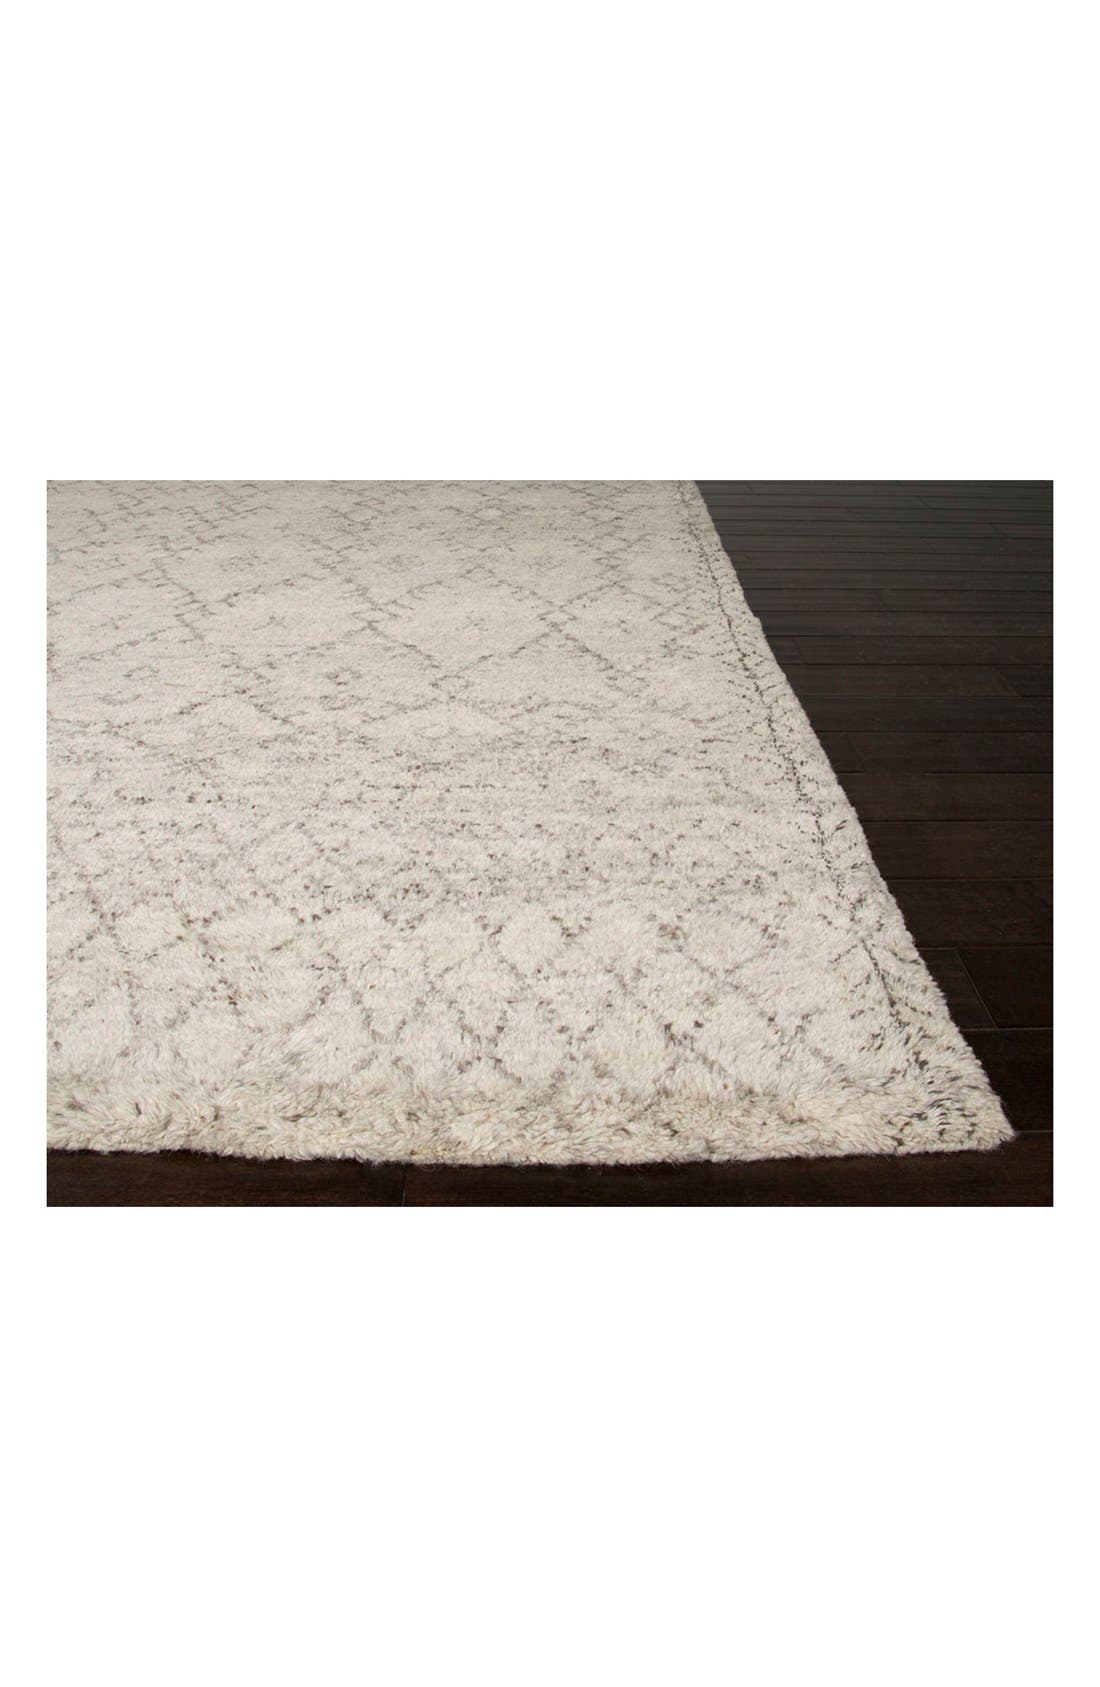 'Zola' Wool Area Rug,                             Alternate thumbnail 2, color,                             IVORY/ GREY